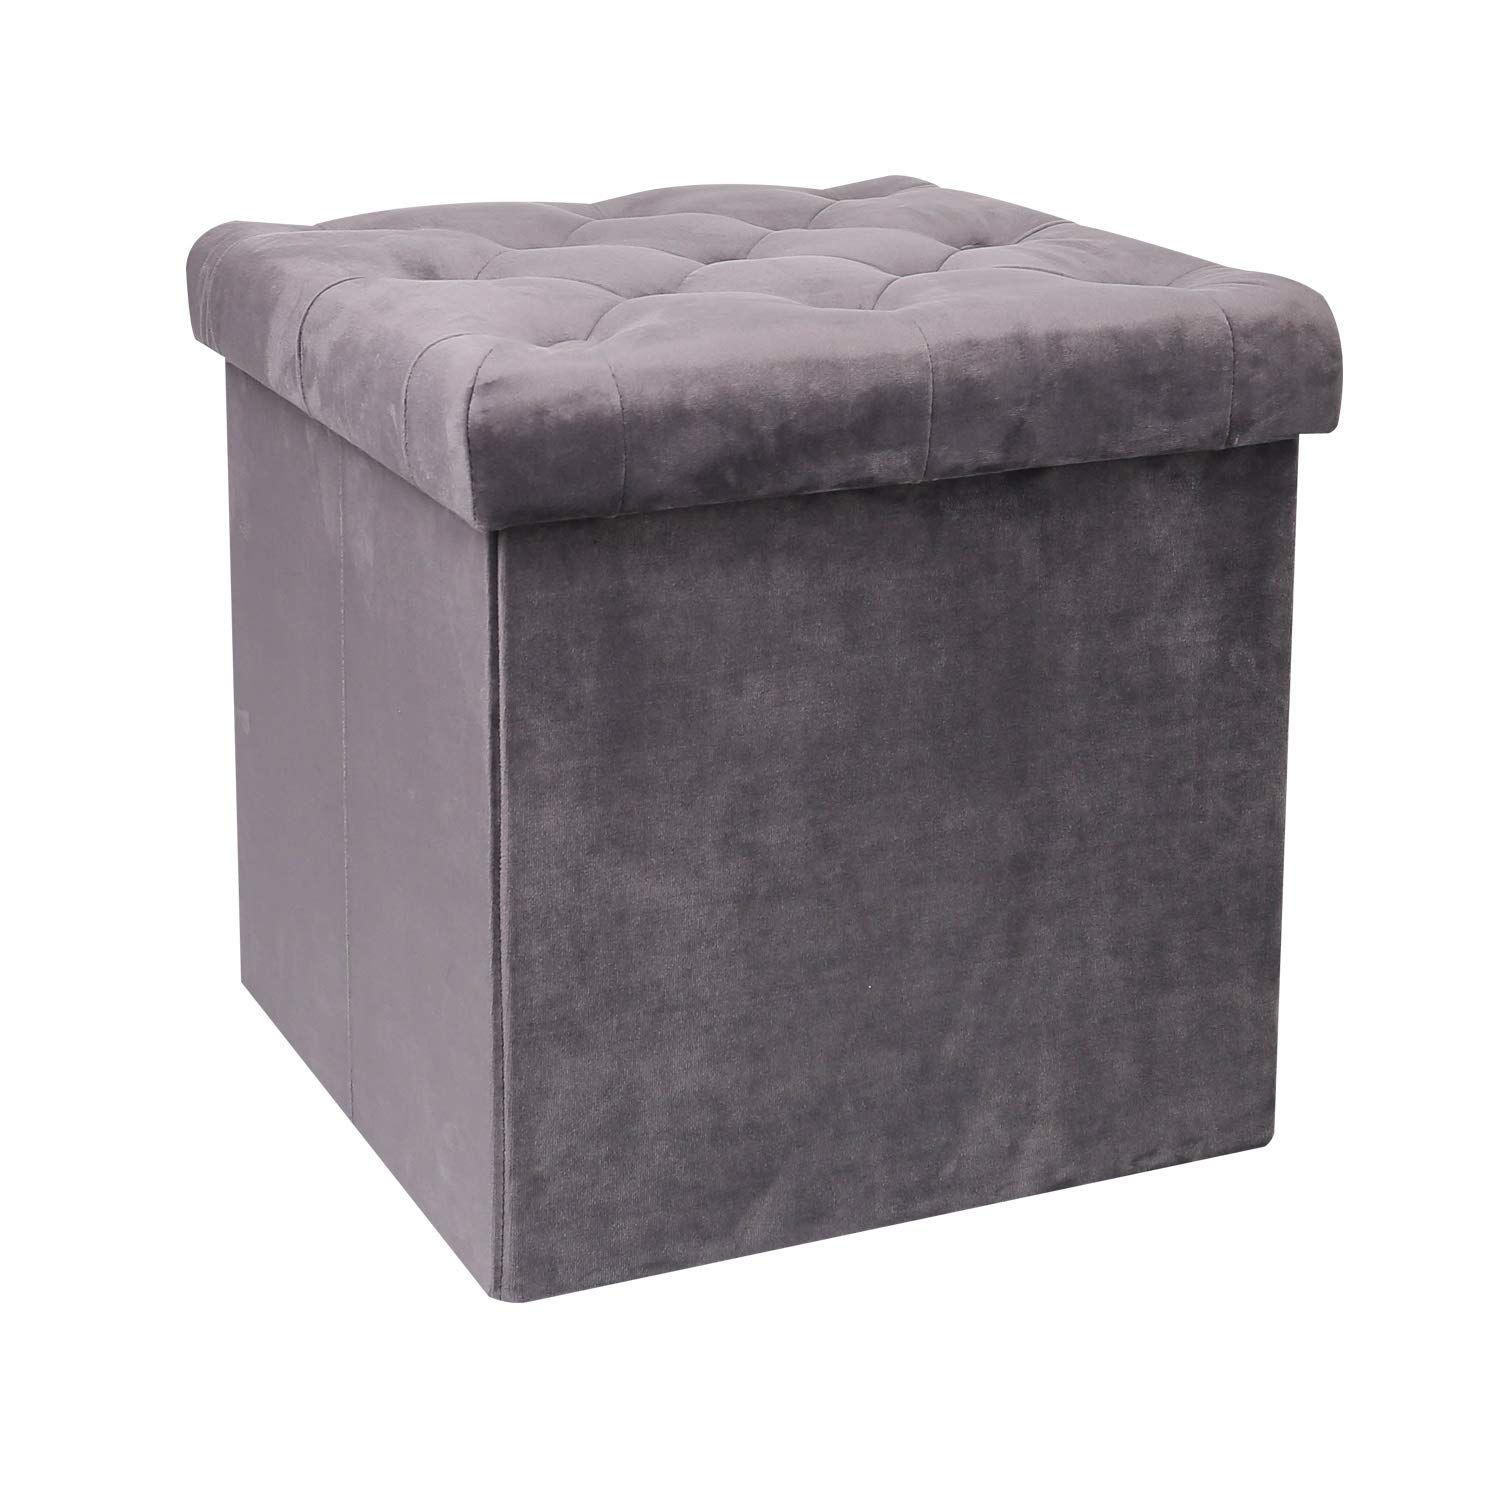 Amazon Com B Fsobeiialeo Storage Ottoman Velvet Tufted Folding